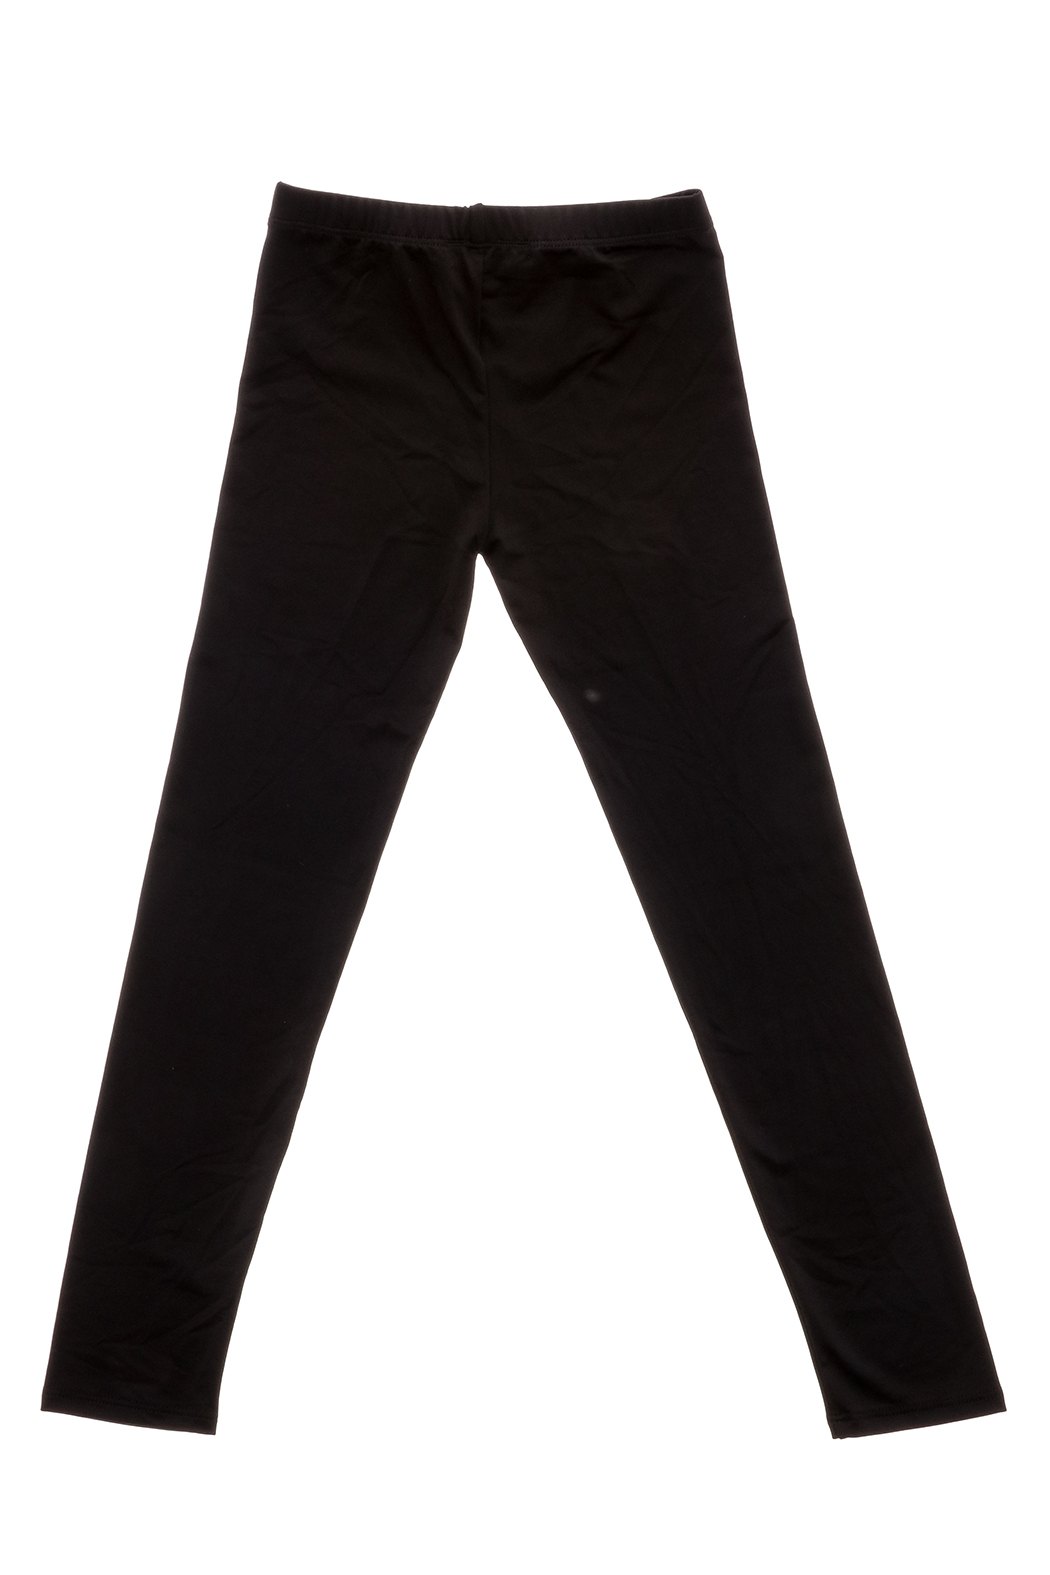 Rock Candy Classic Black Leggings - Back Cropped Image